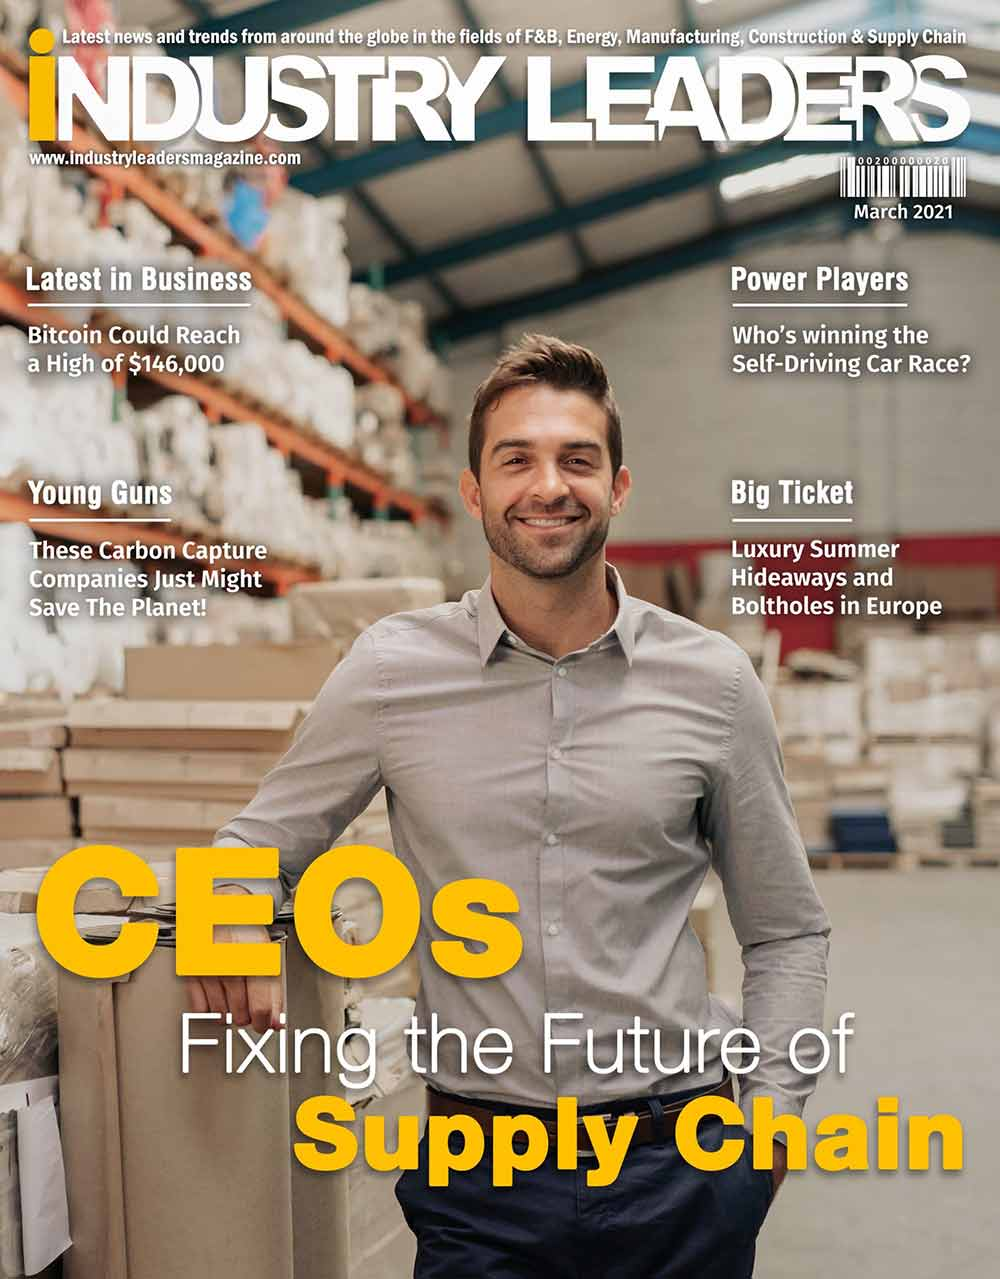 CEOs Fixing the Future of Supply Chain